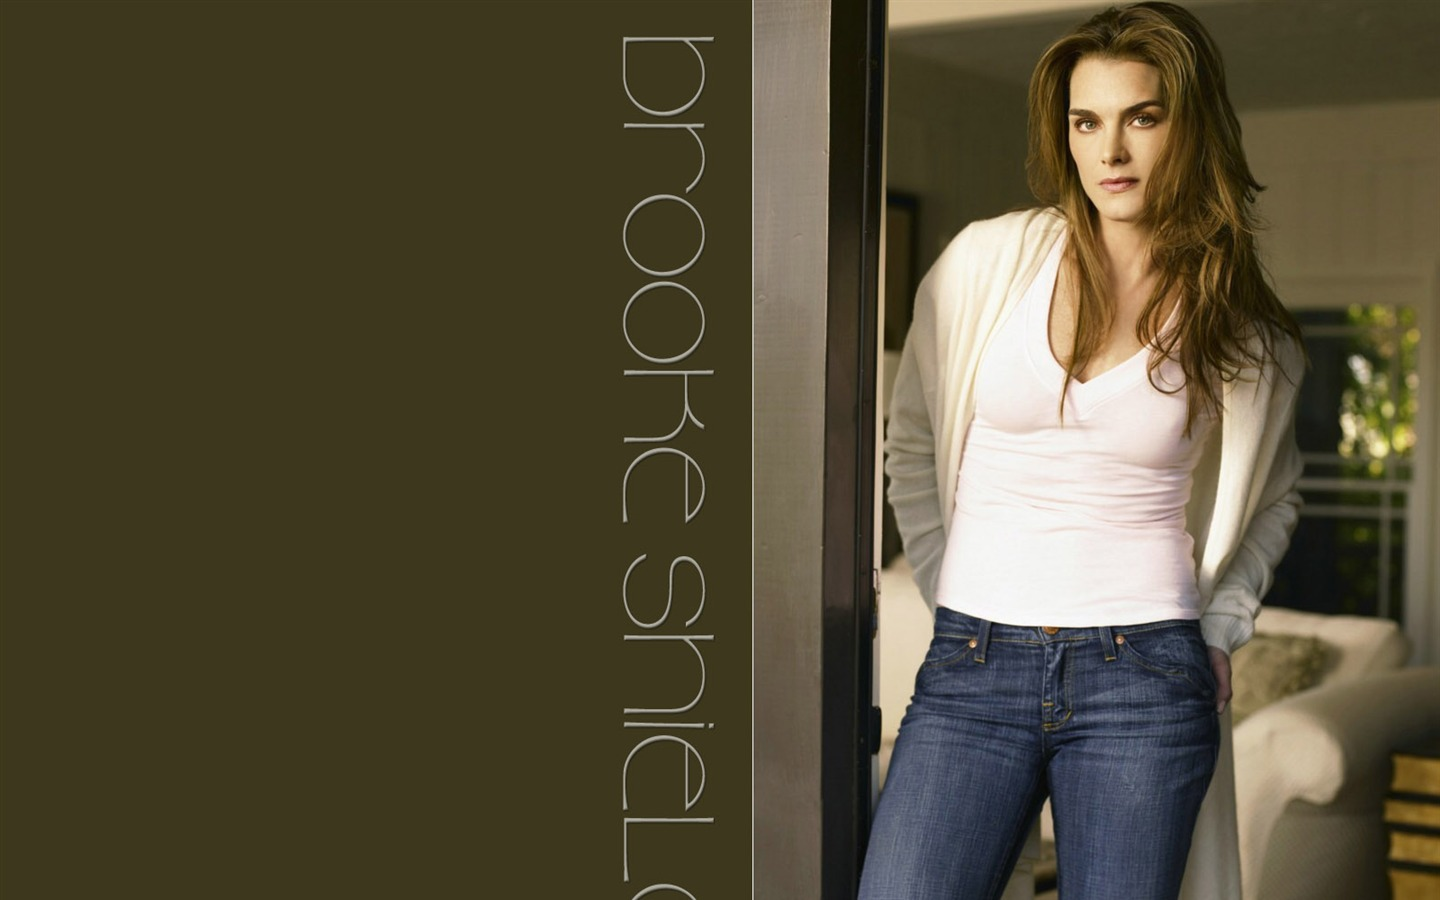 Brooke Shields #023 - 1440x900 Wallpapers Pictures Photos Images